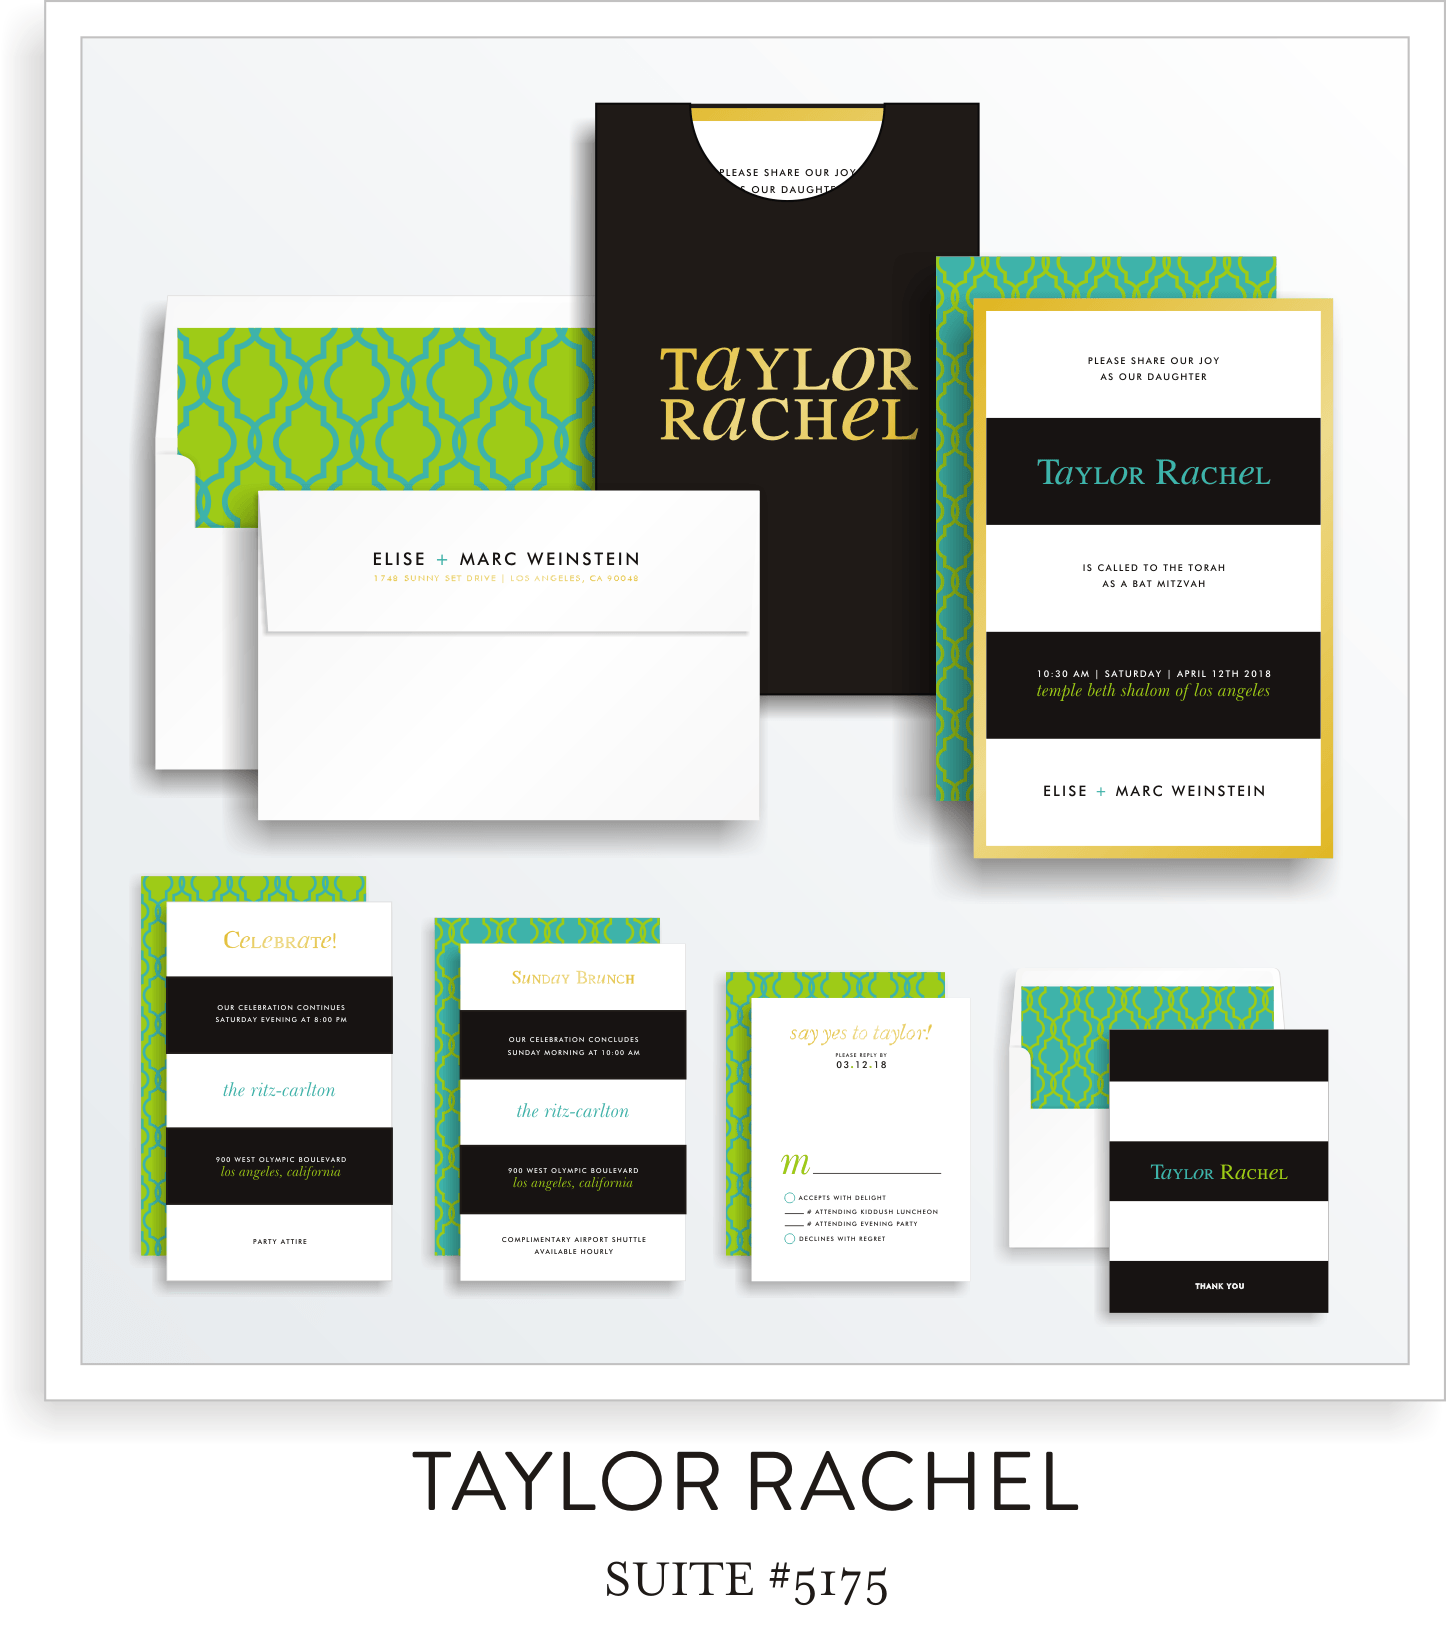 Bat Mitzvah Invitation Suite 5175 - Taylor Rachel